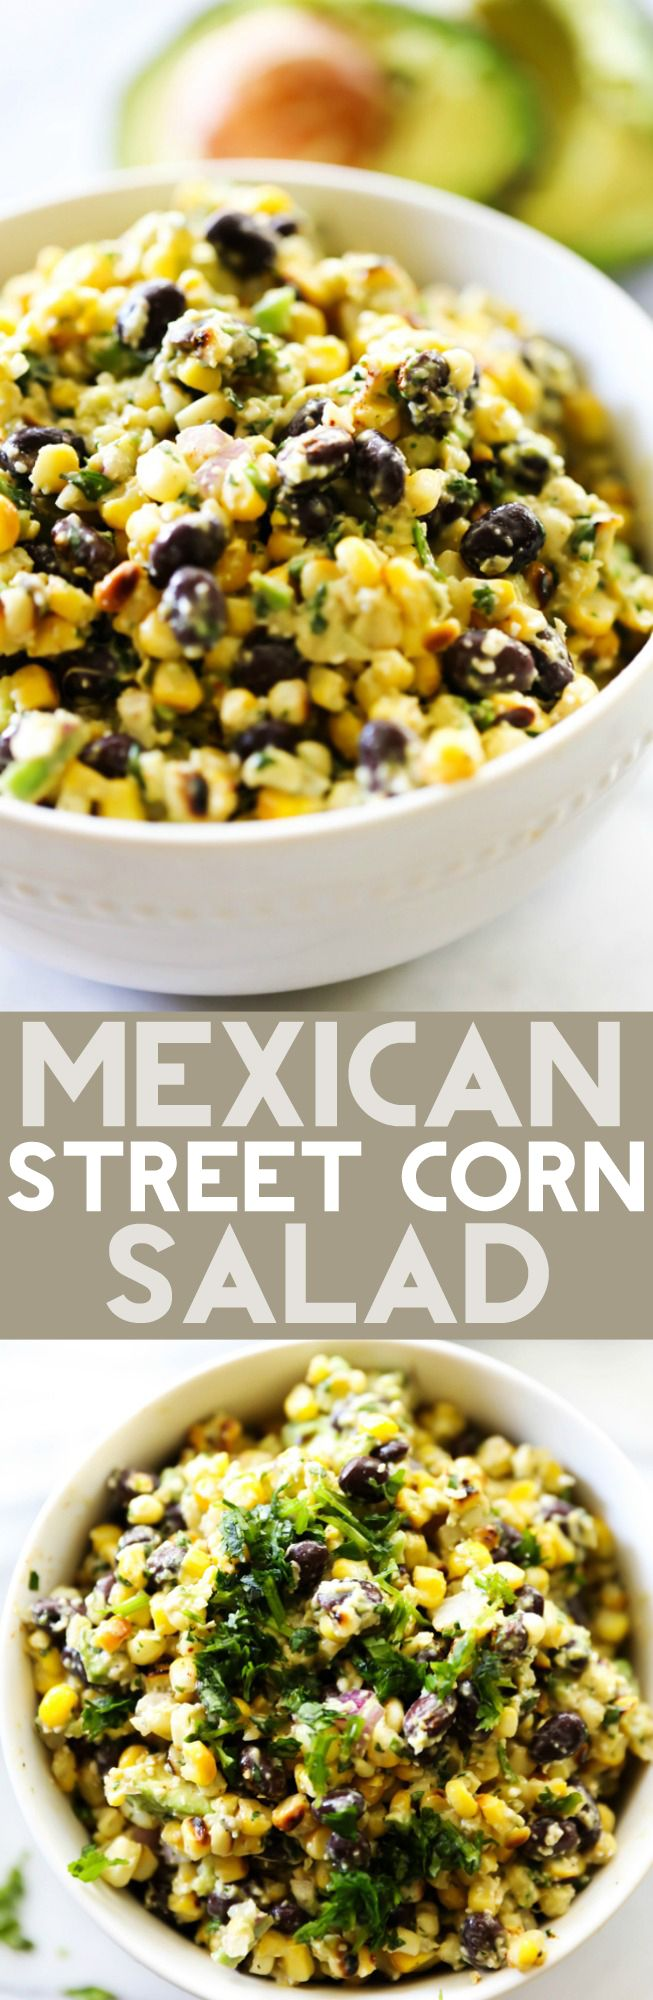 Mexican Street Corn Salad Recipe Salads Pinterest Mexican